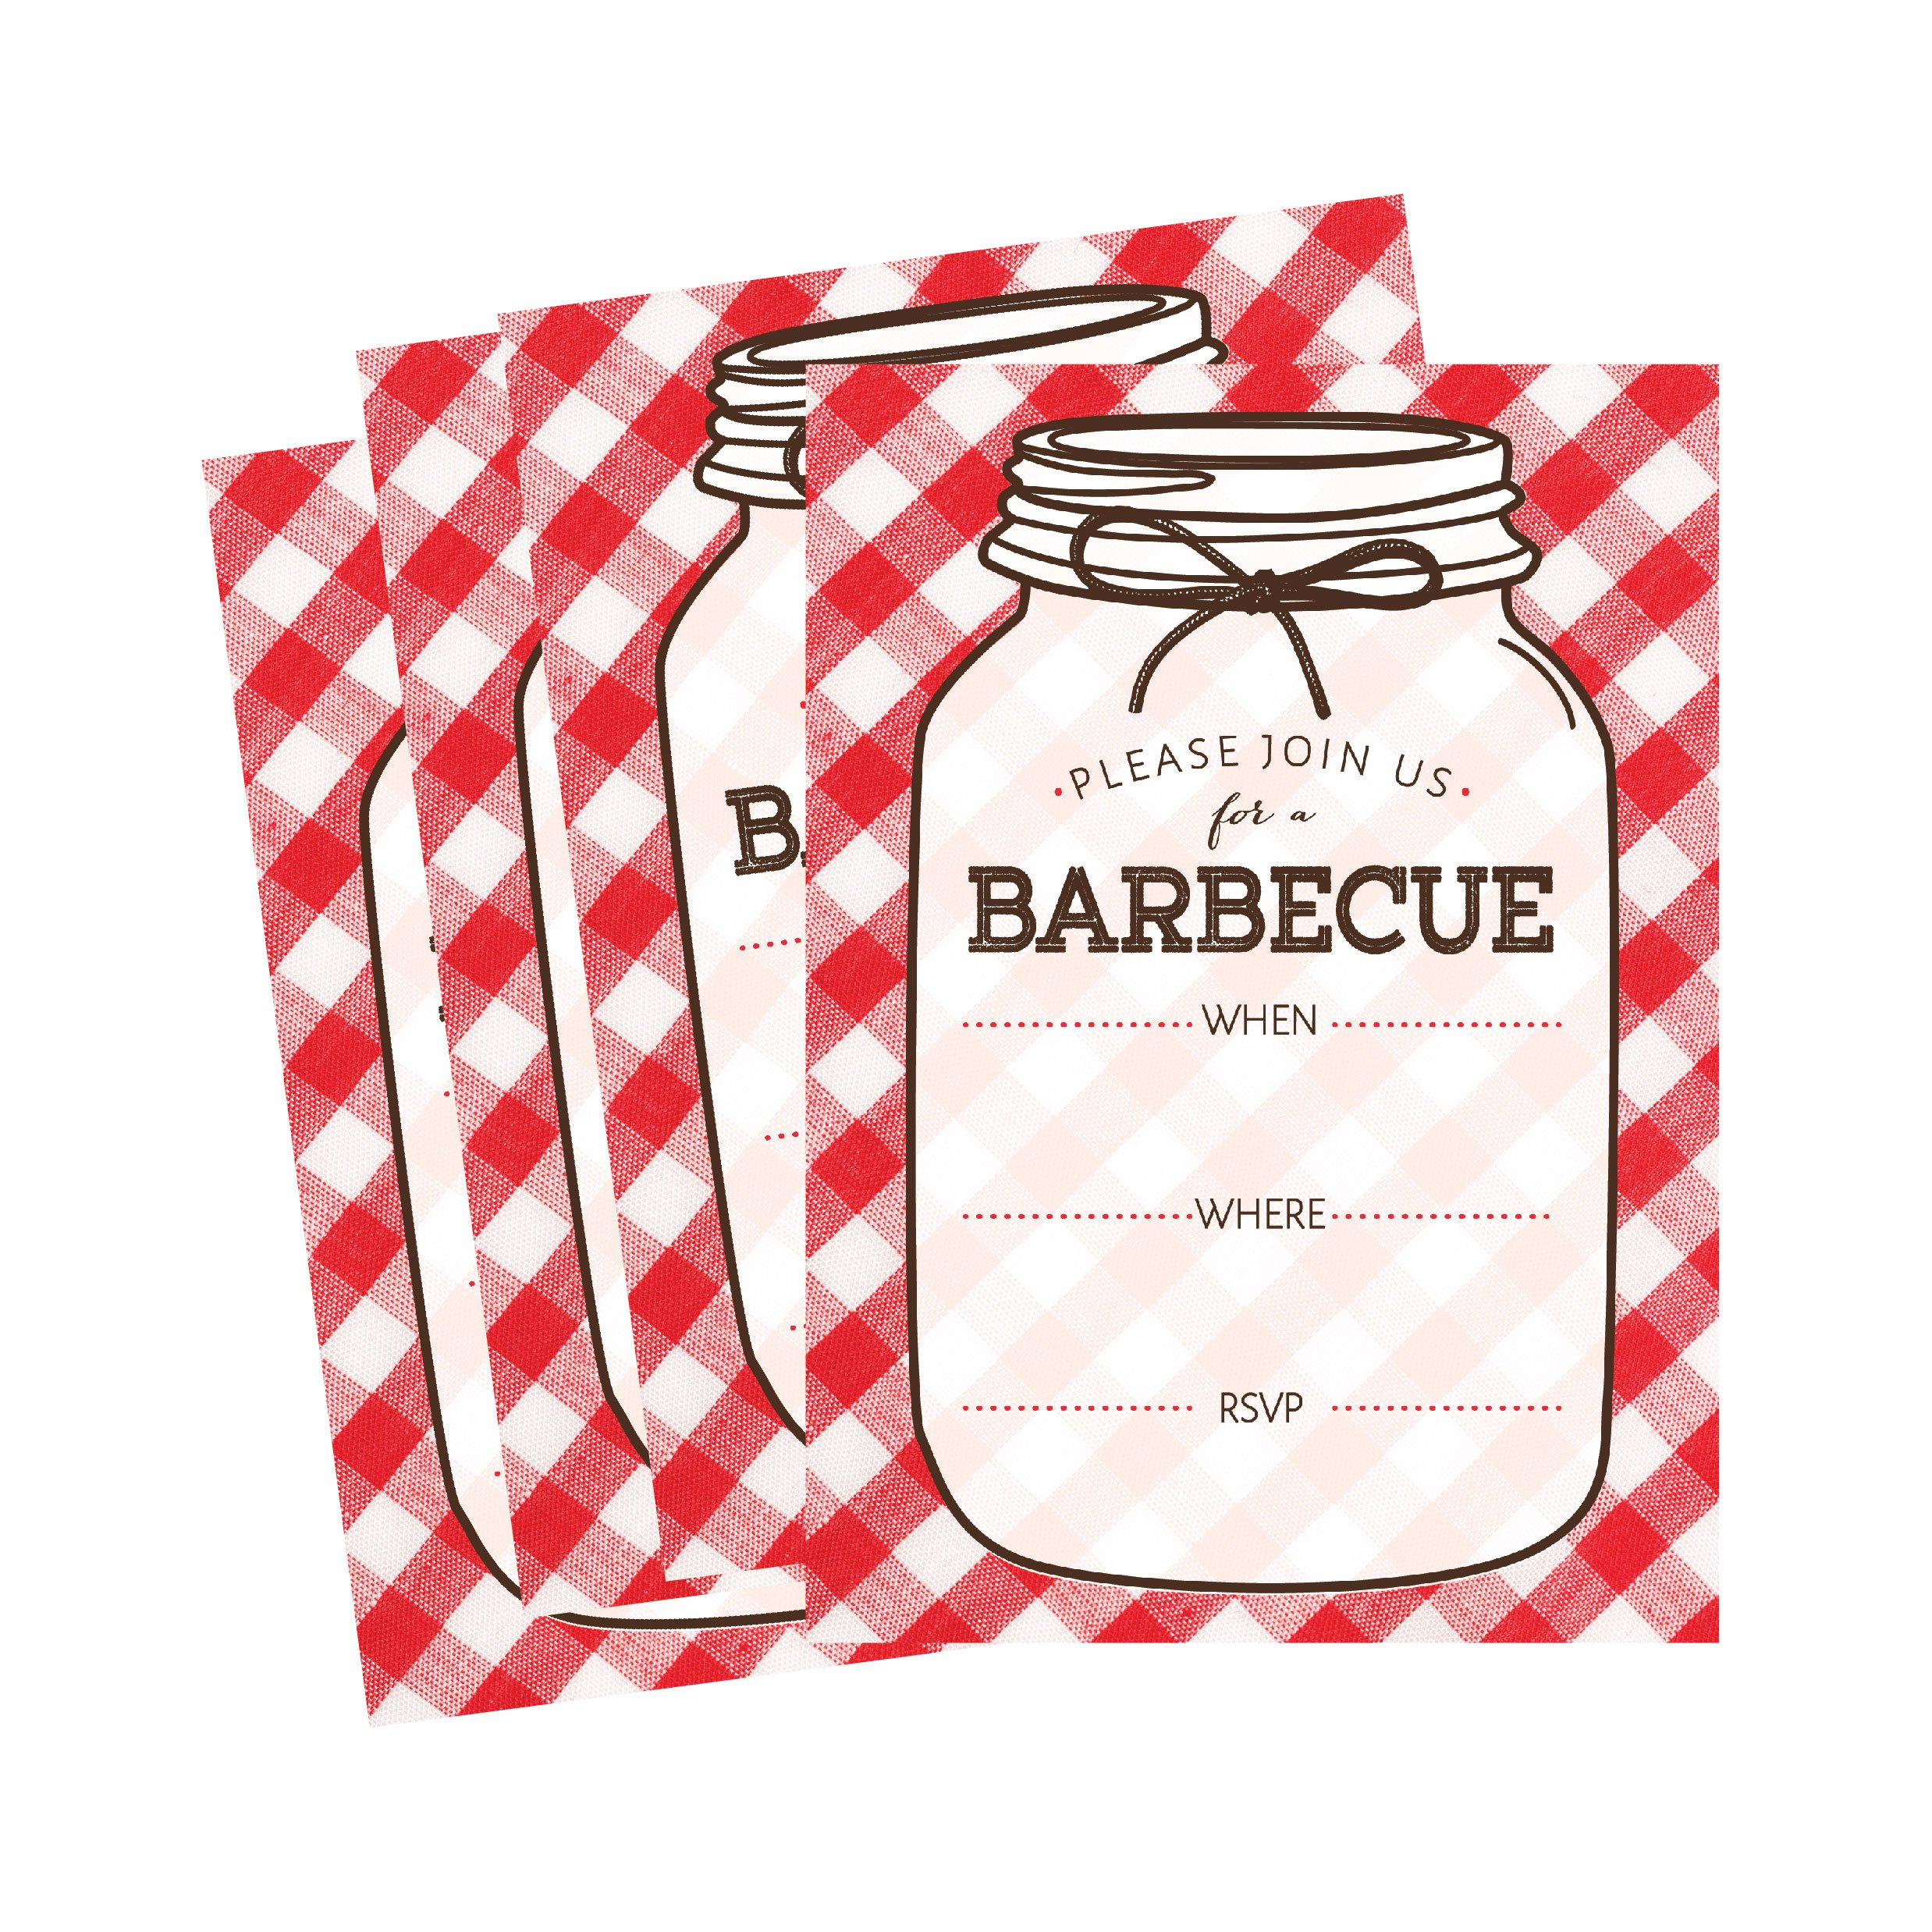 Amazon.com: 50 Wood Summer BBQ Party Invitations for Children, Kids ...